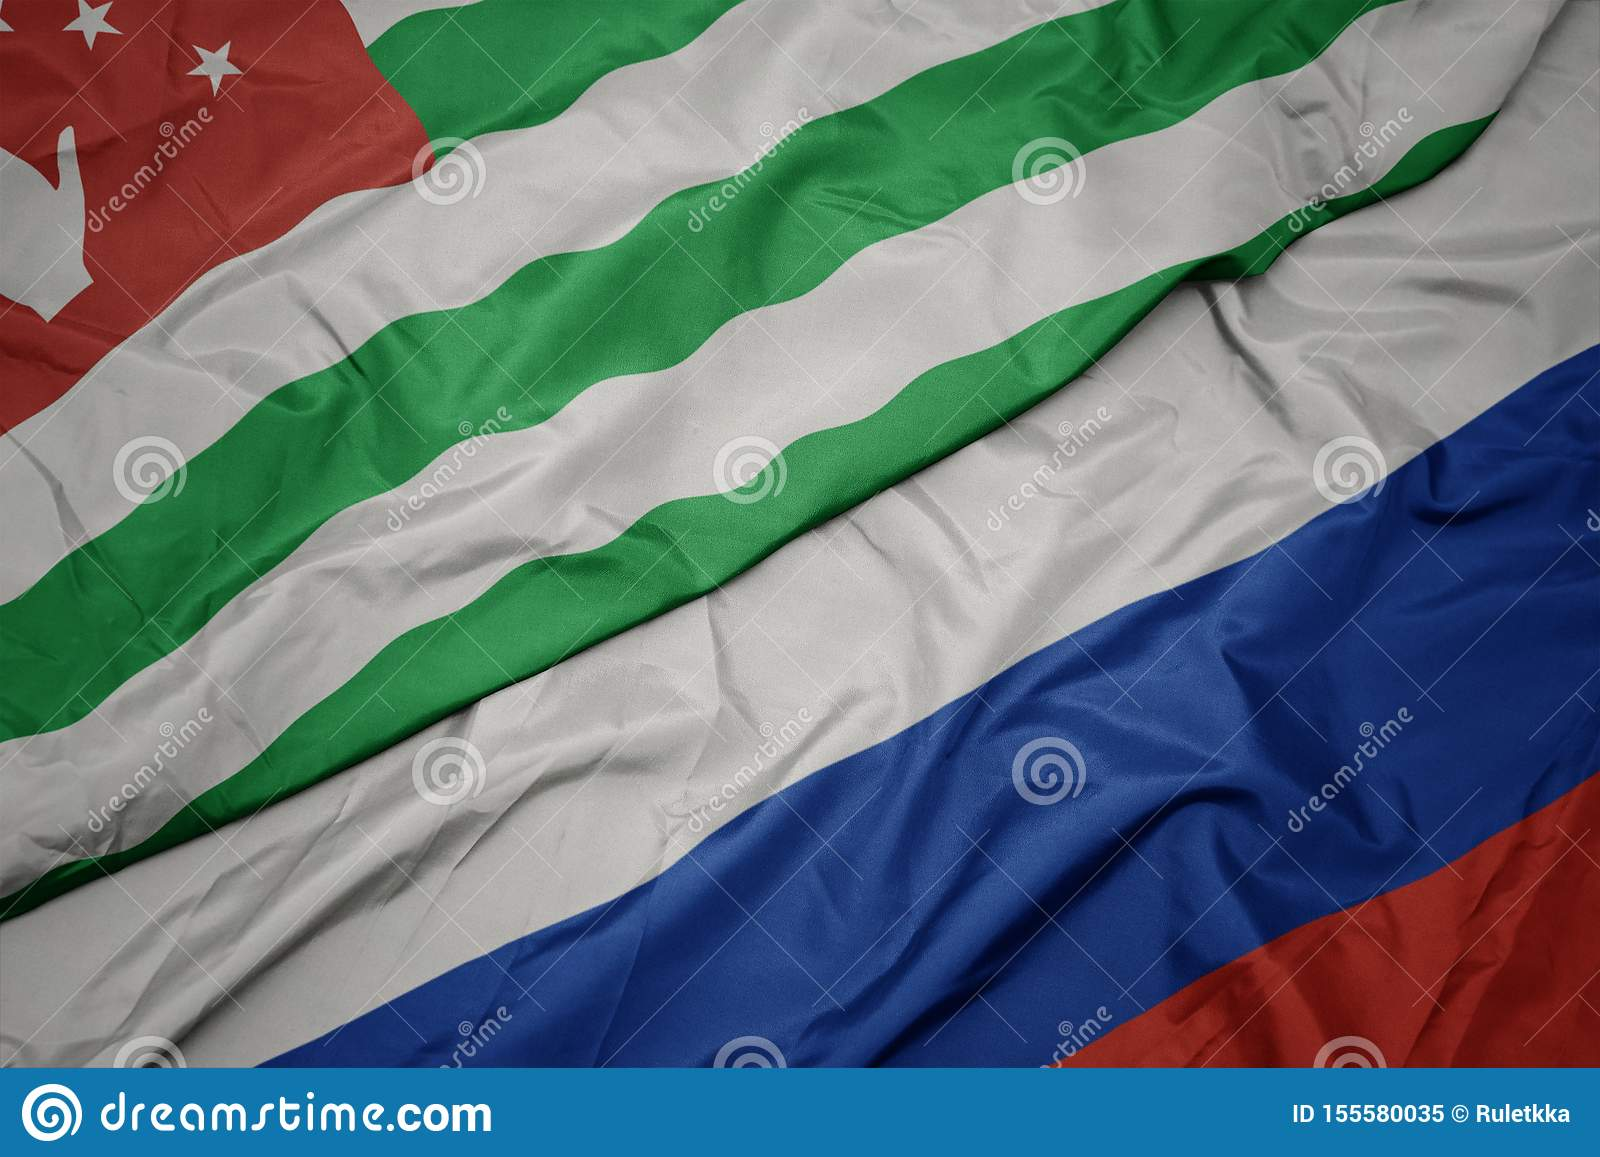 waving colorful flag of russia and national flag of abkhazia